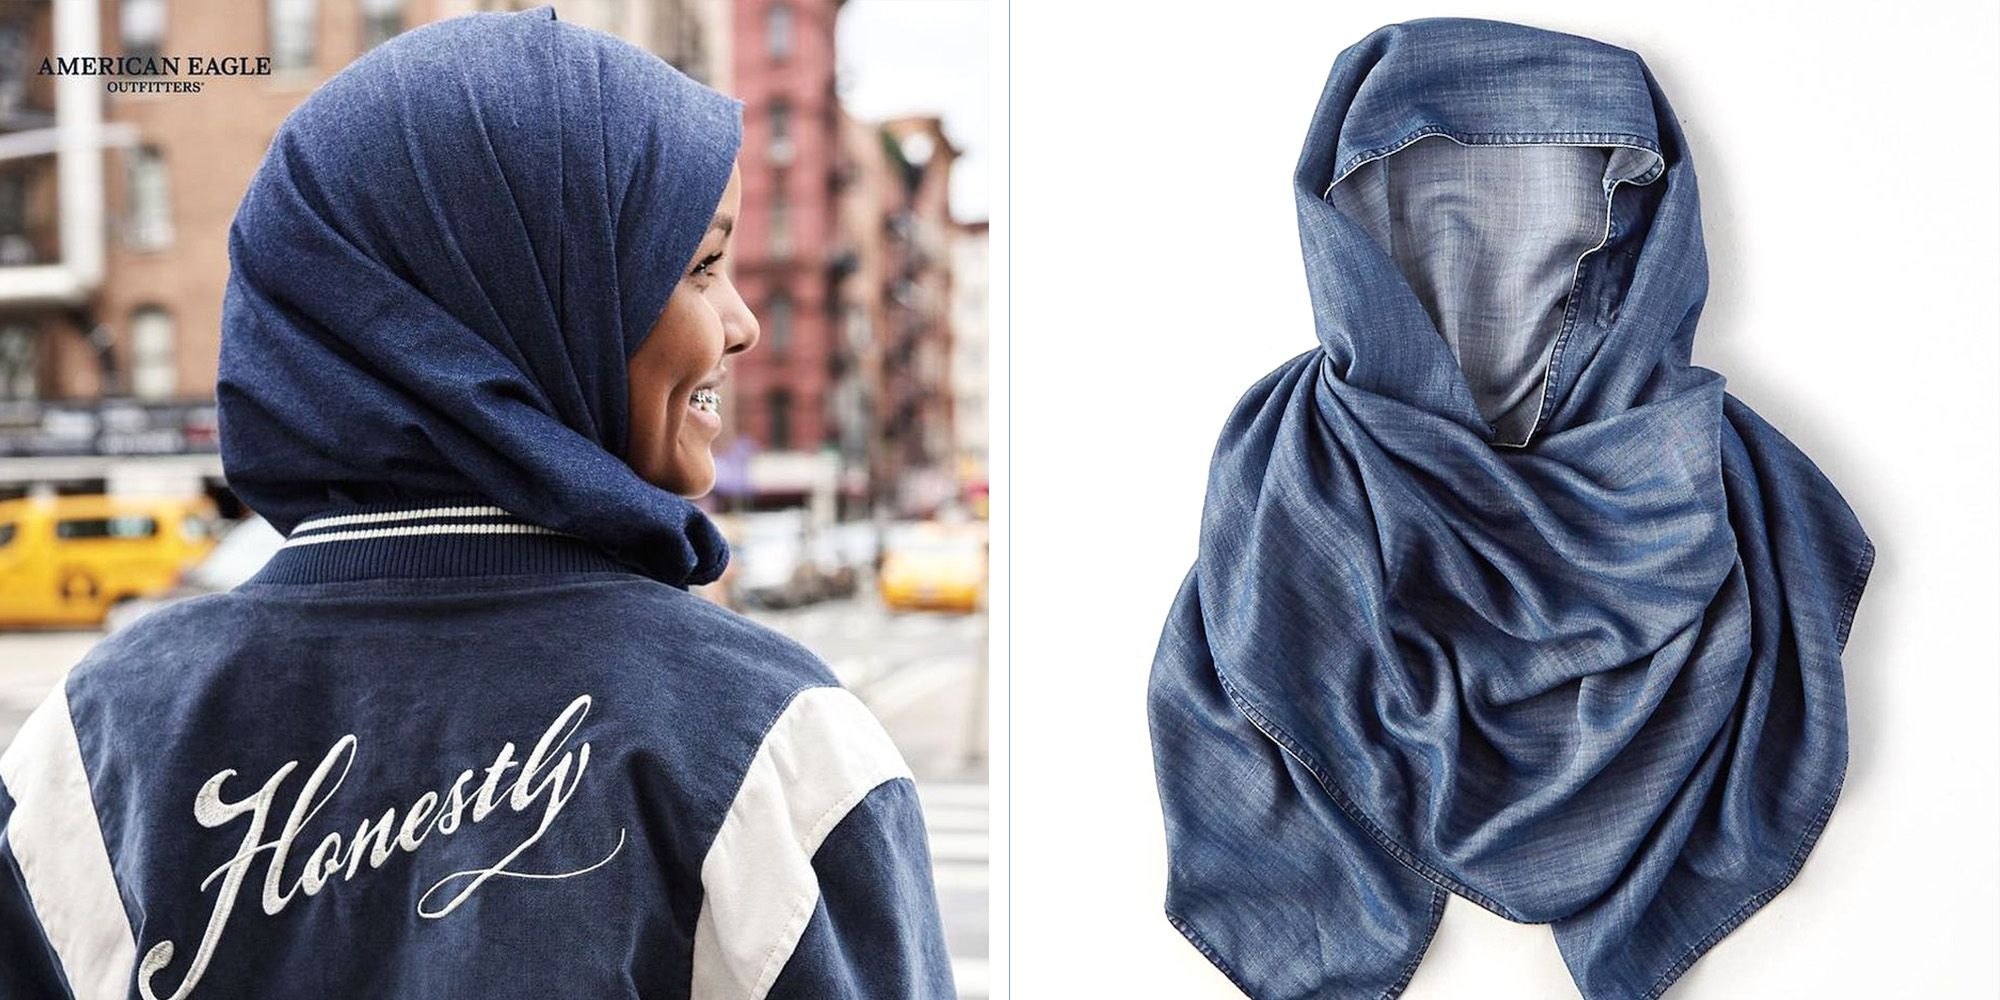 American Eagle Introduces a Cool Denim Hijab to Its Online Collection